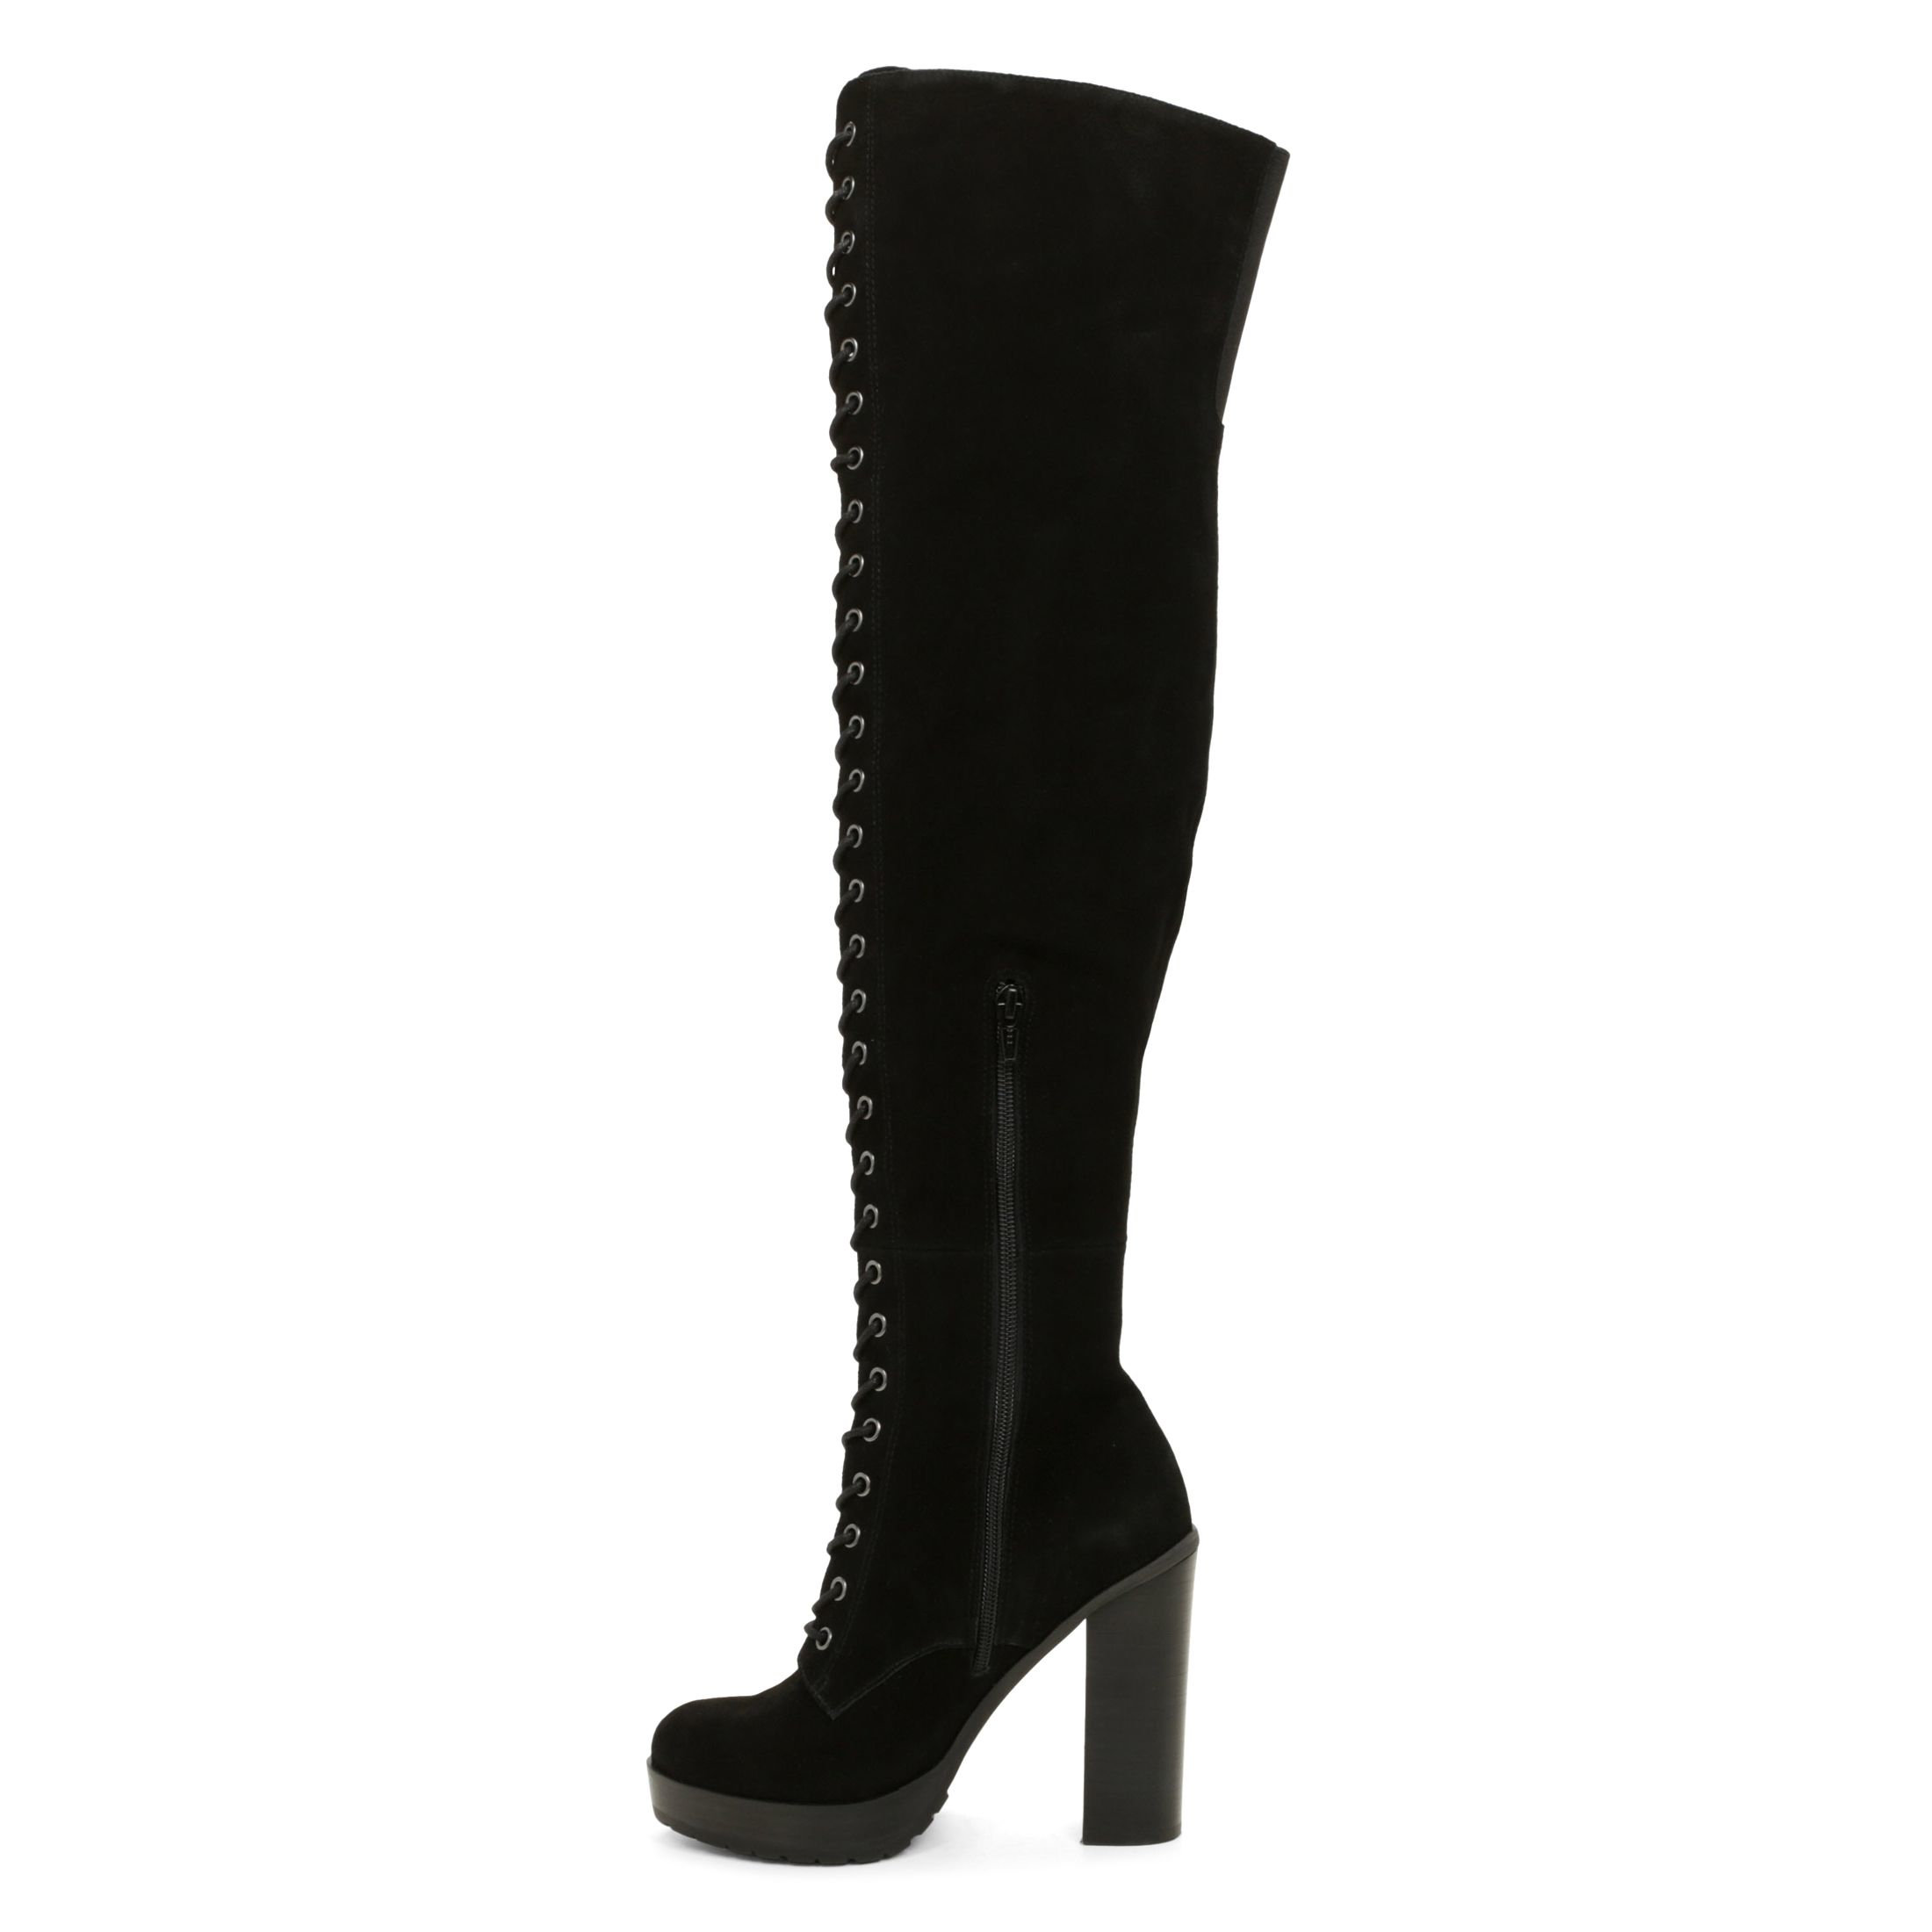 Aldo Adeasien Lace Up Over The Knee Boots in Black | Lyst